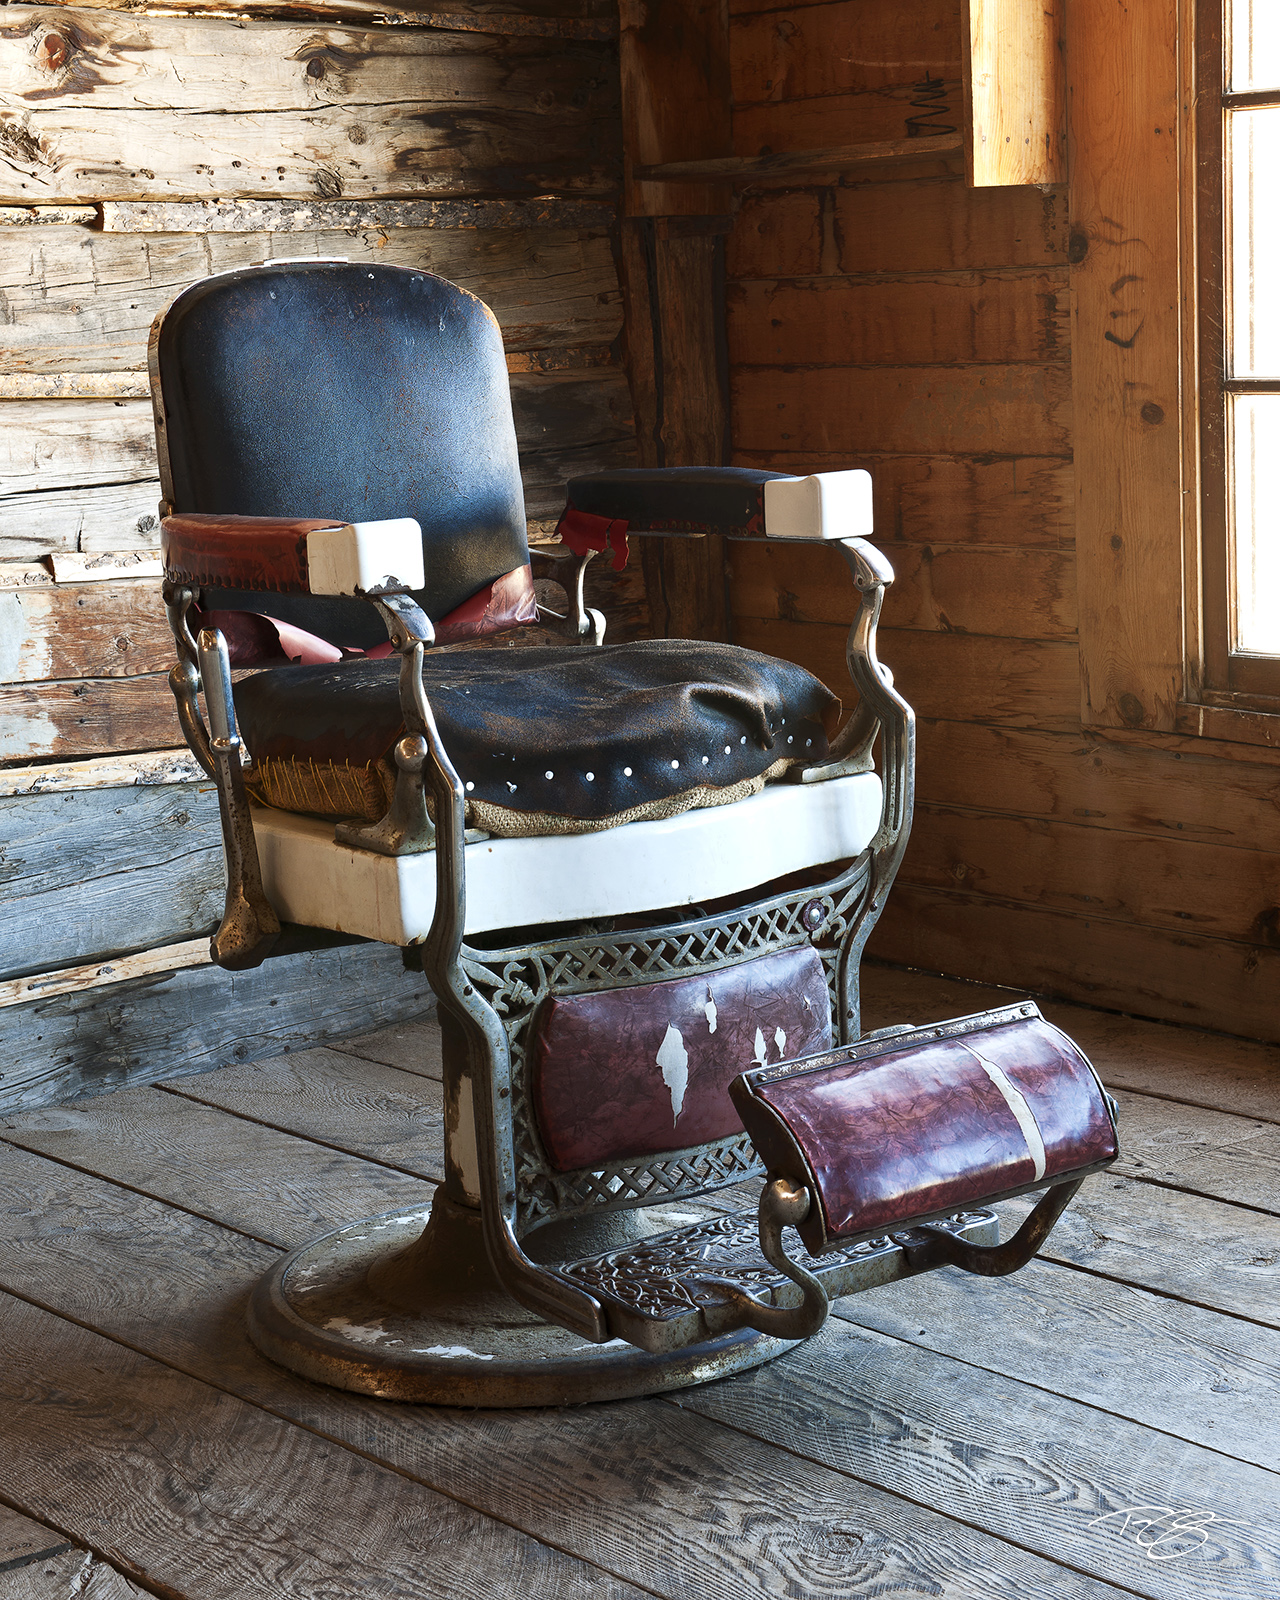 barber chair, old west, gold rush, shave, haircut, vintage chair, old barber chair, barber's chair, shave and a haircut, take a seat, have a seat, antique barber chair, koken barber chair, koken, st. , photo